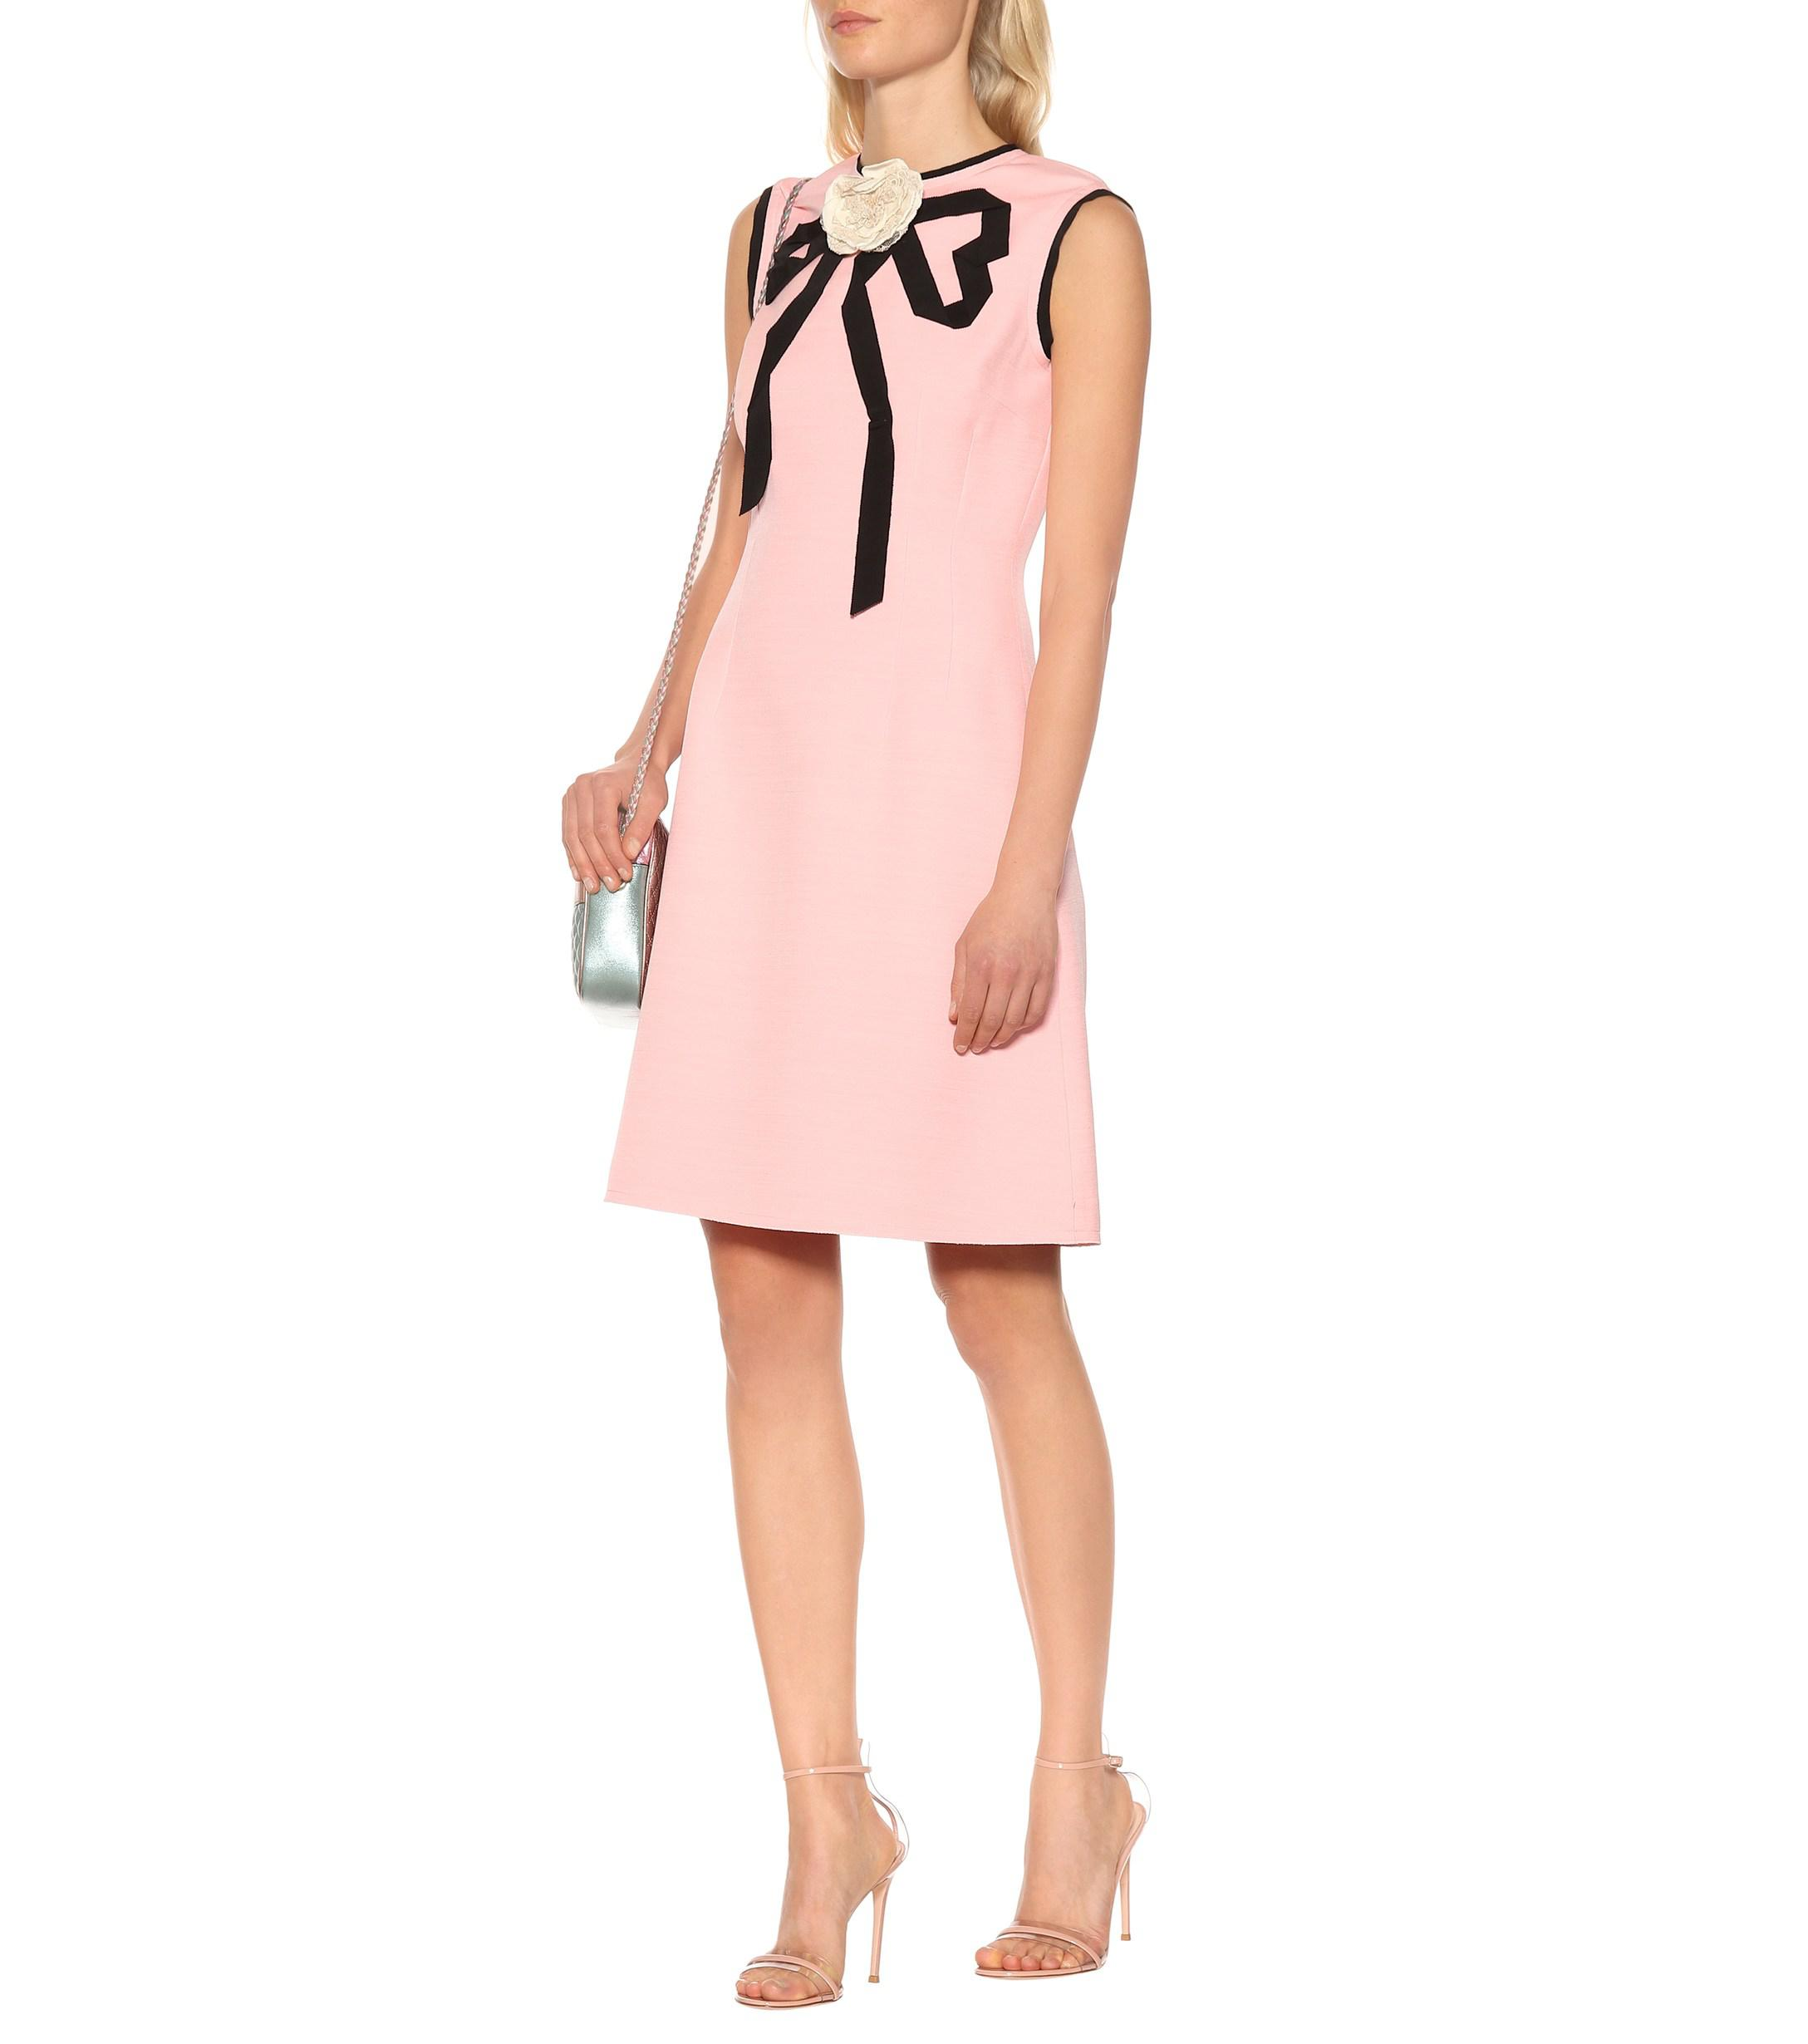 c930f950c86 Gucci Wool And Silk Crêpe Dress in Pink - Lyst